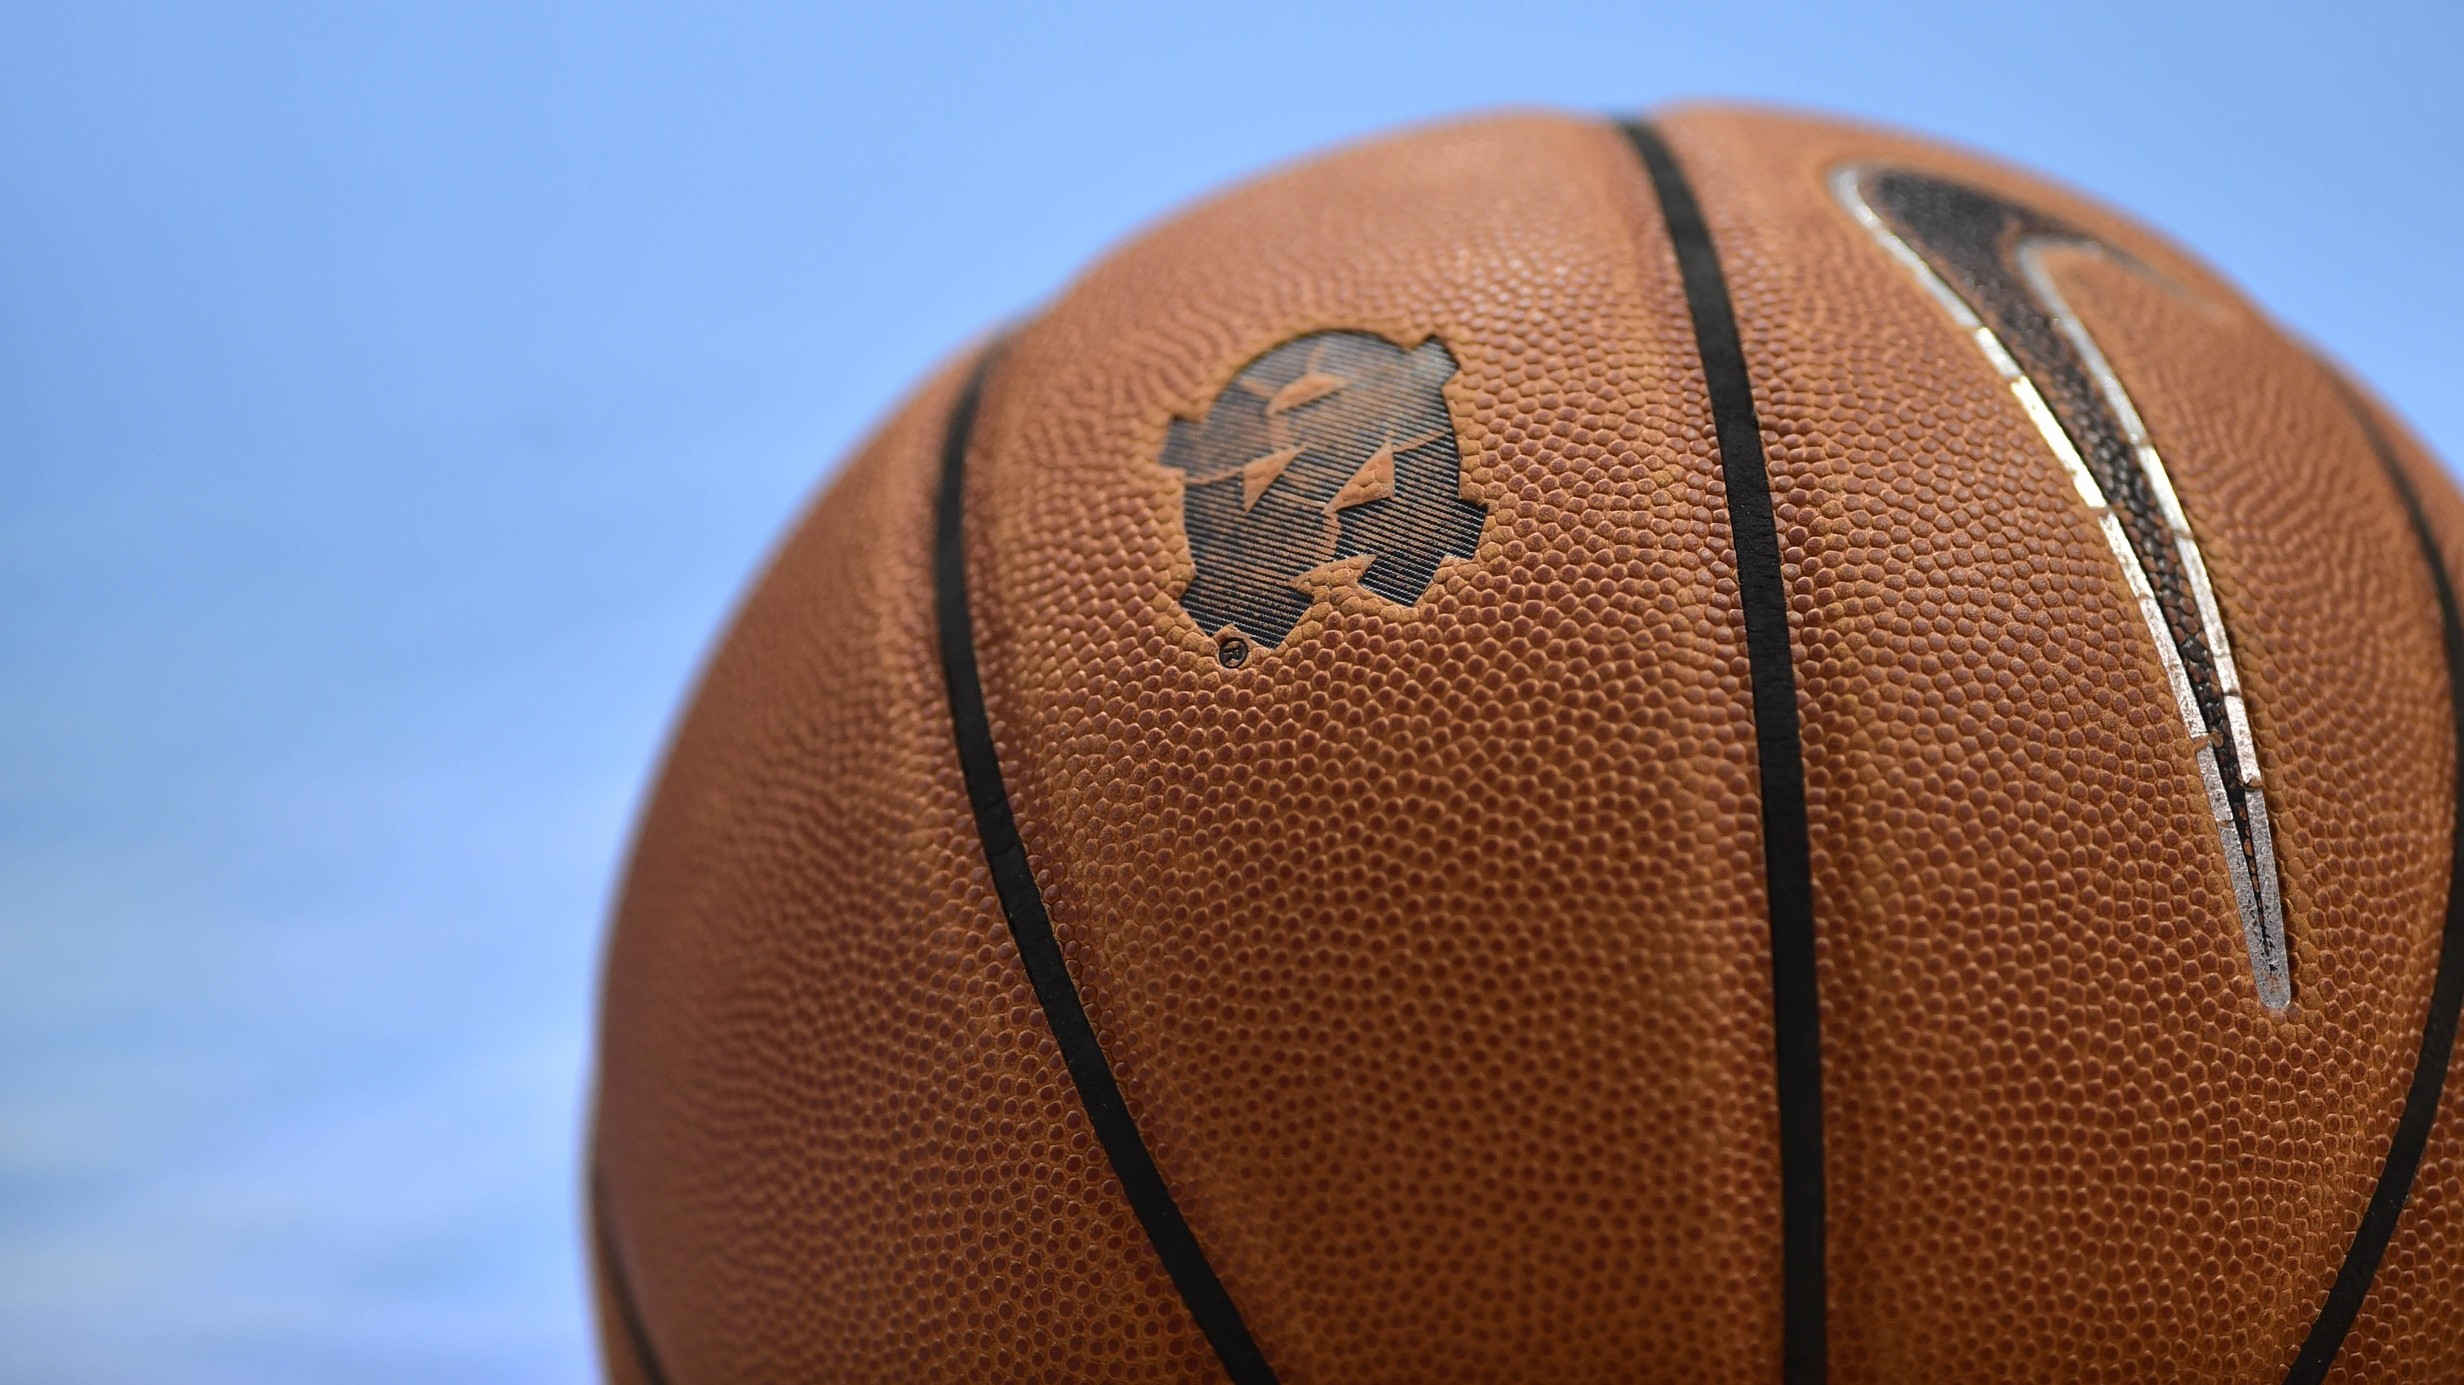 North Carolina Scandal Continues to Show How NCAA Incentivizes Eligibility Over Education